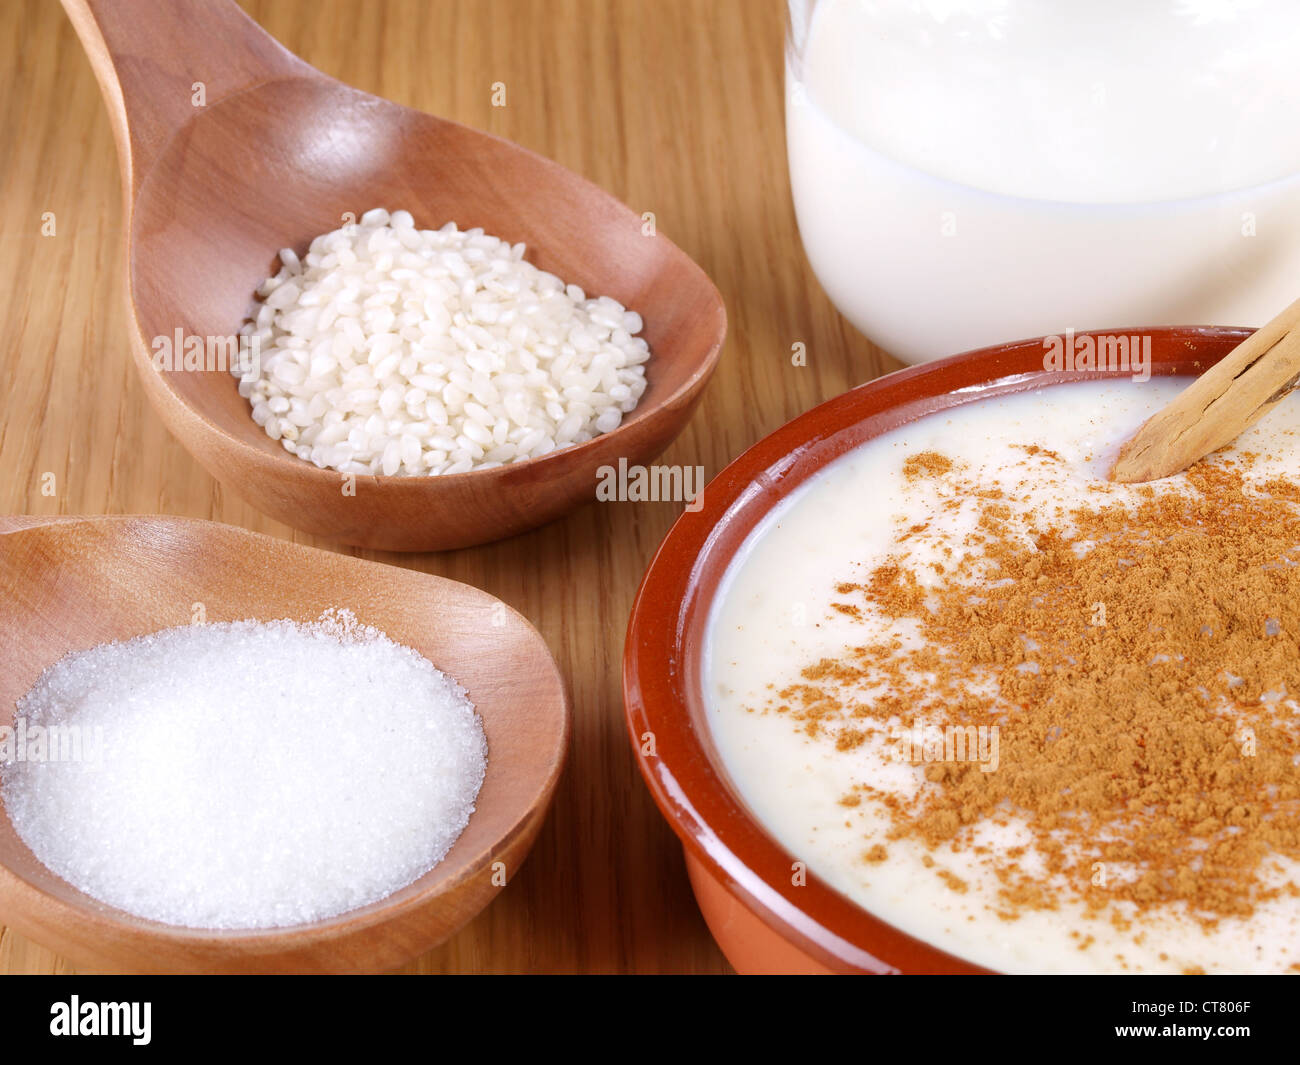 Rice Pudding – Arroz con leche. Spanish version of the rice pudding. Made with milk, rice,  sugar, and cinnamon. - Stock Image